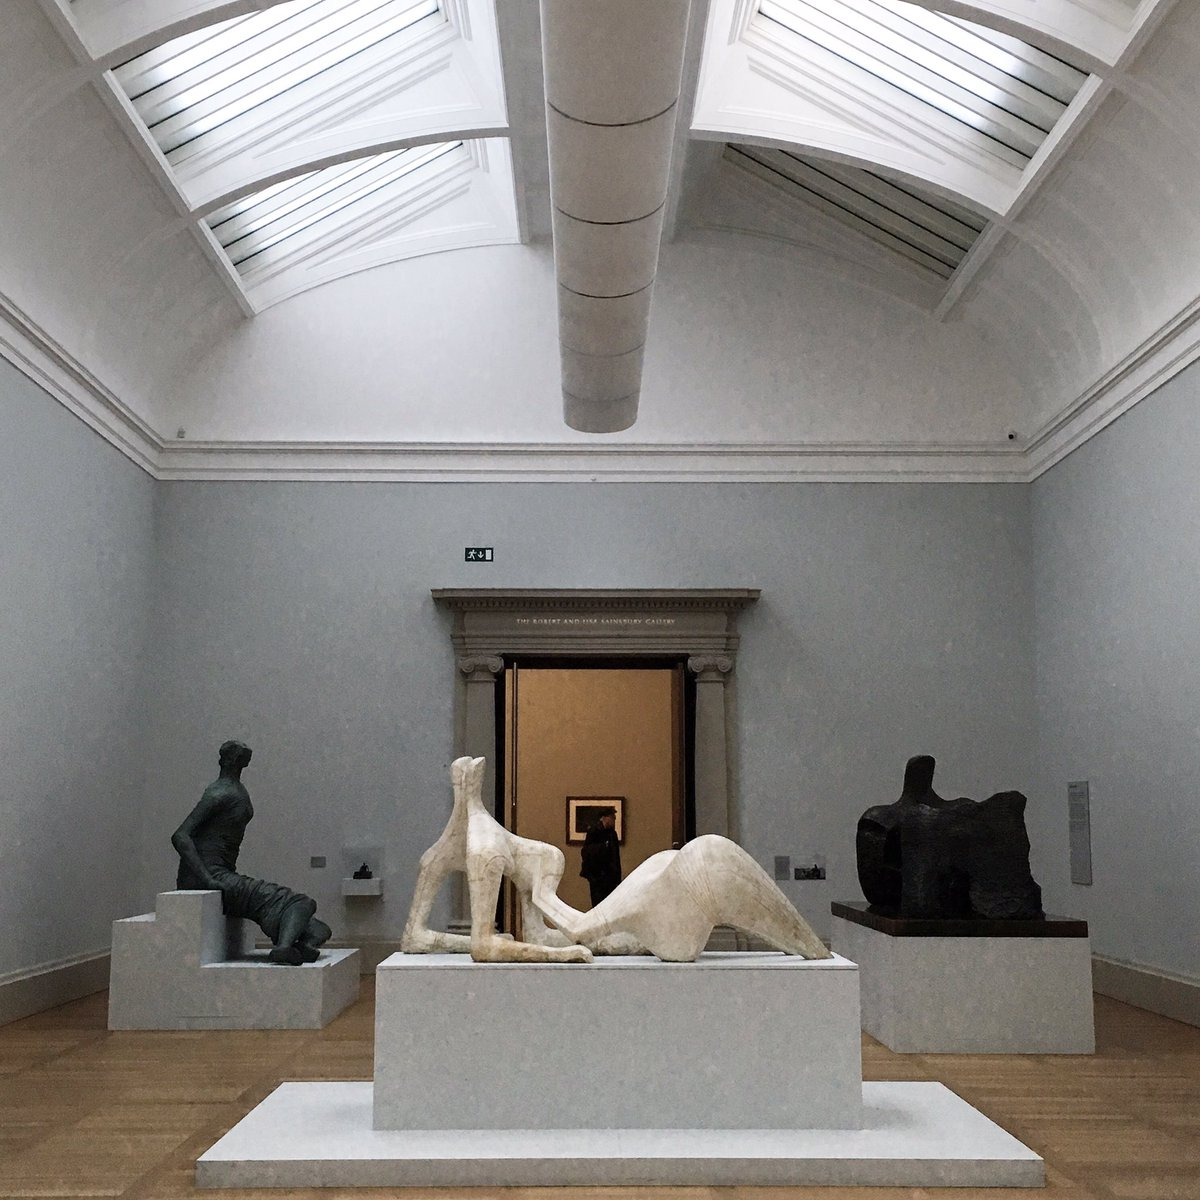 The #HenryMoore gallery at @Tate Britain has an odd, almost underwater feeling to it. #ITweetMuseums<br>http://pic.twitter.com/CgM9UgtVY4 &ndash; bij Tate Britain